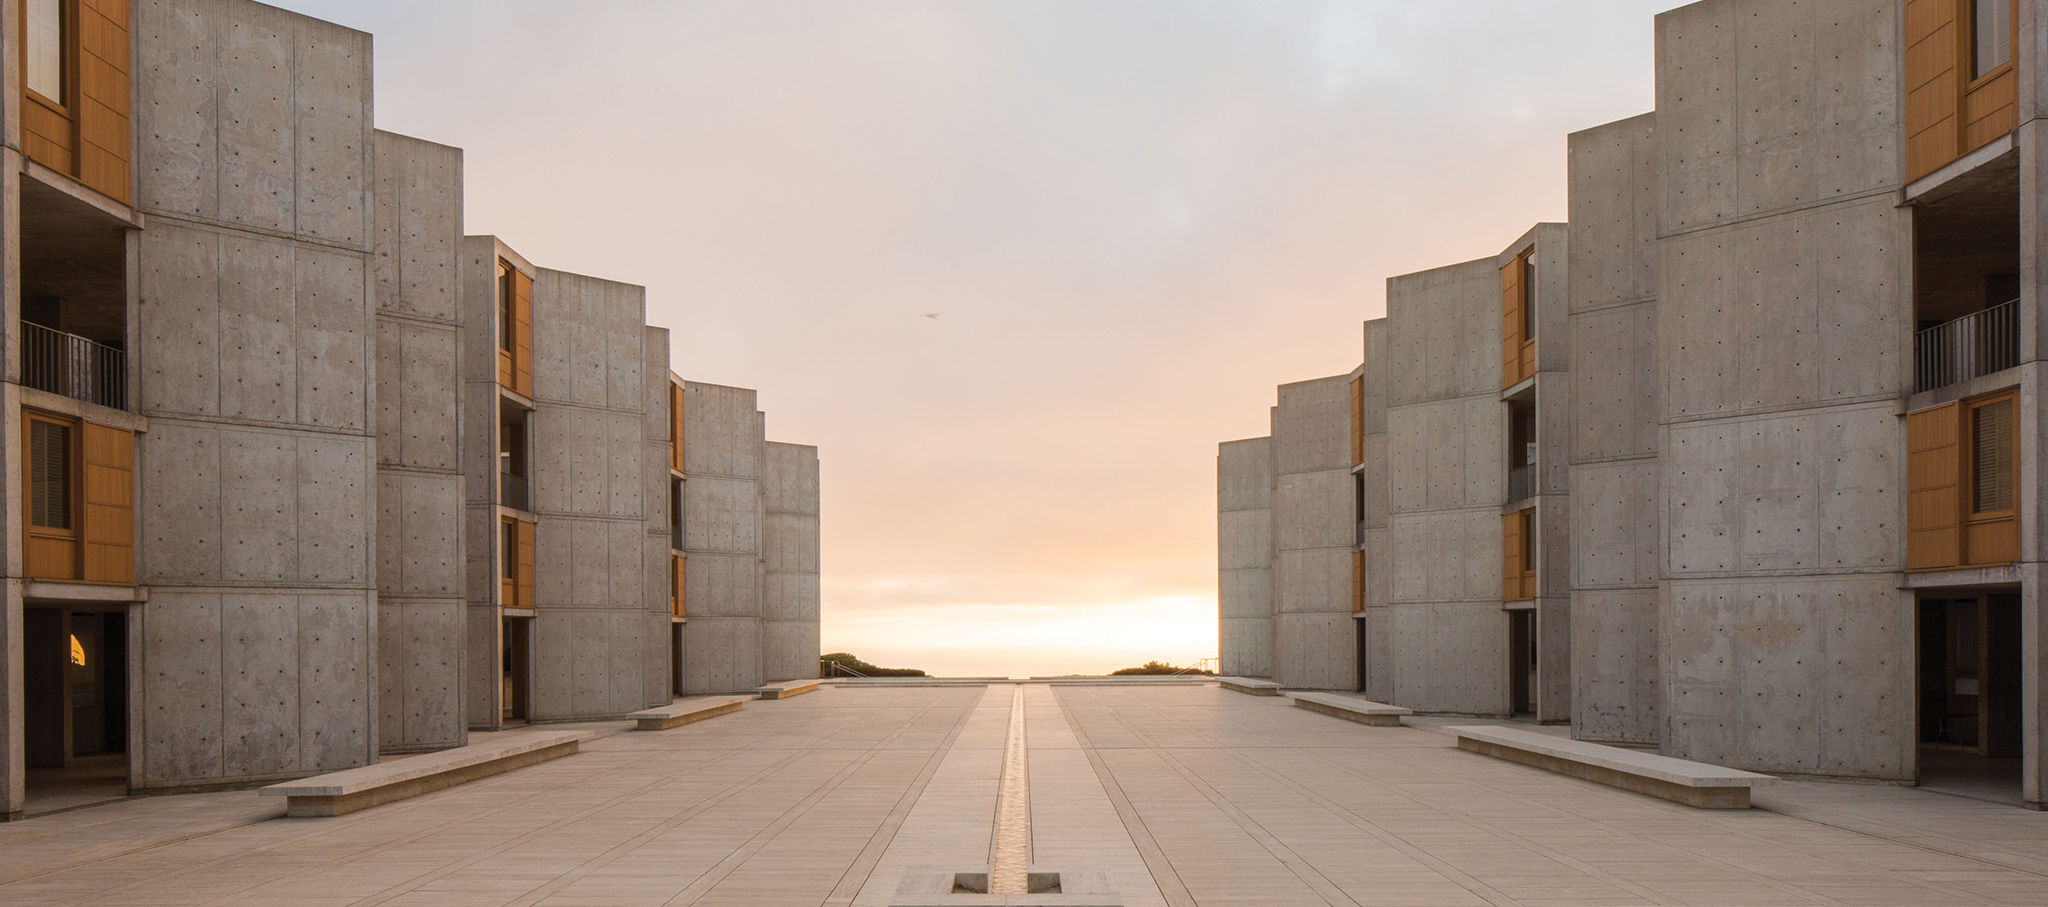 Salk Institute for Biological Studies by Louis Khan. Photograph © Elizabeth Daniels / Courtesy vía The Getty Conservation Institute